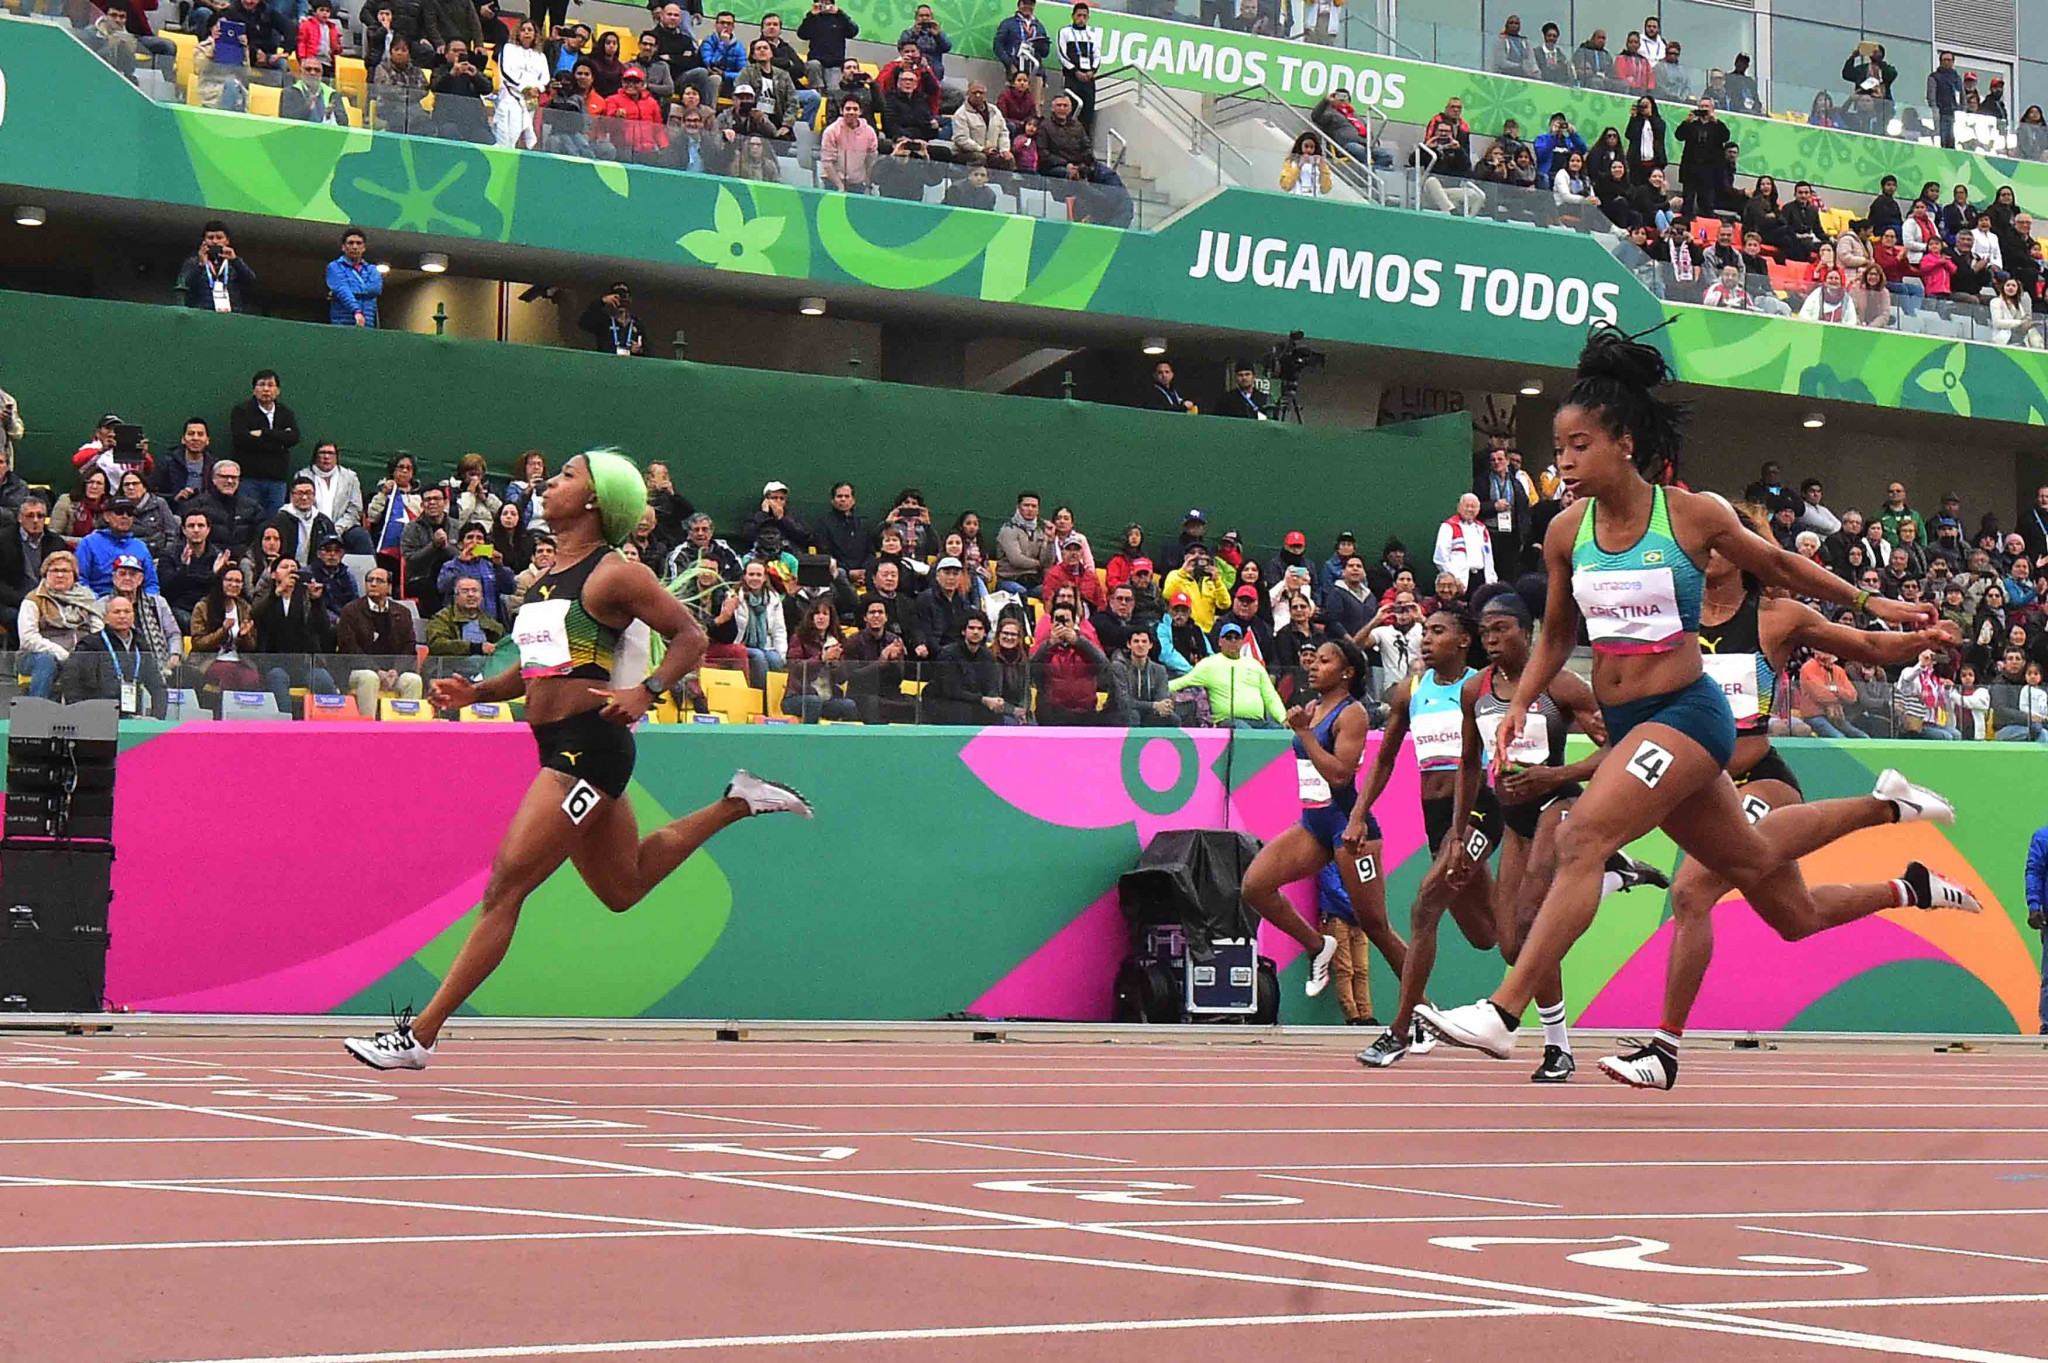 Shelly-Ann Fraser-Pryce broke the 40-year-old women's 200m record at the Pan American Games ©Getty Images